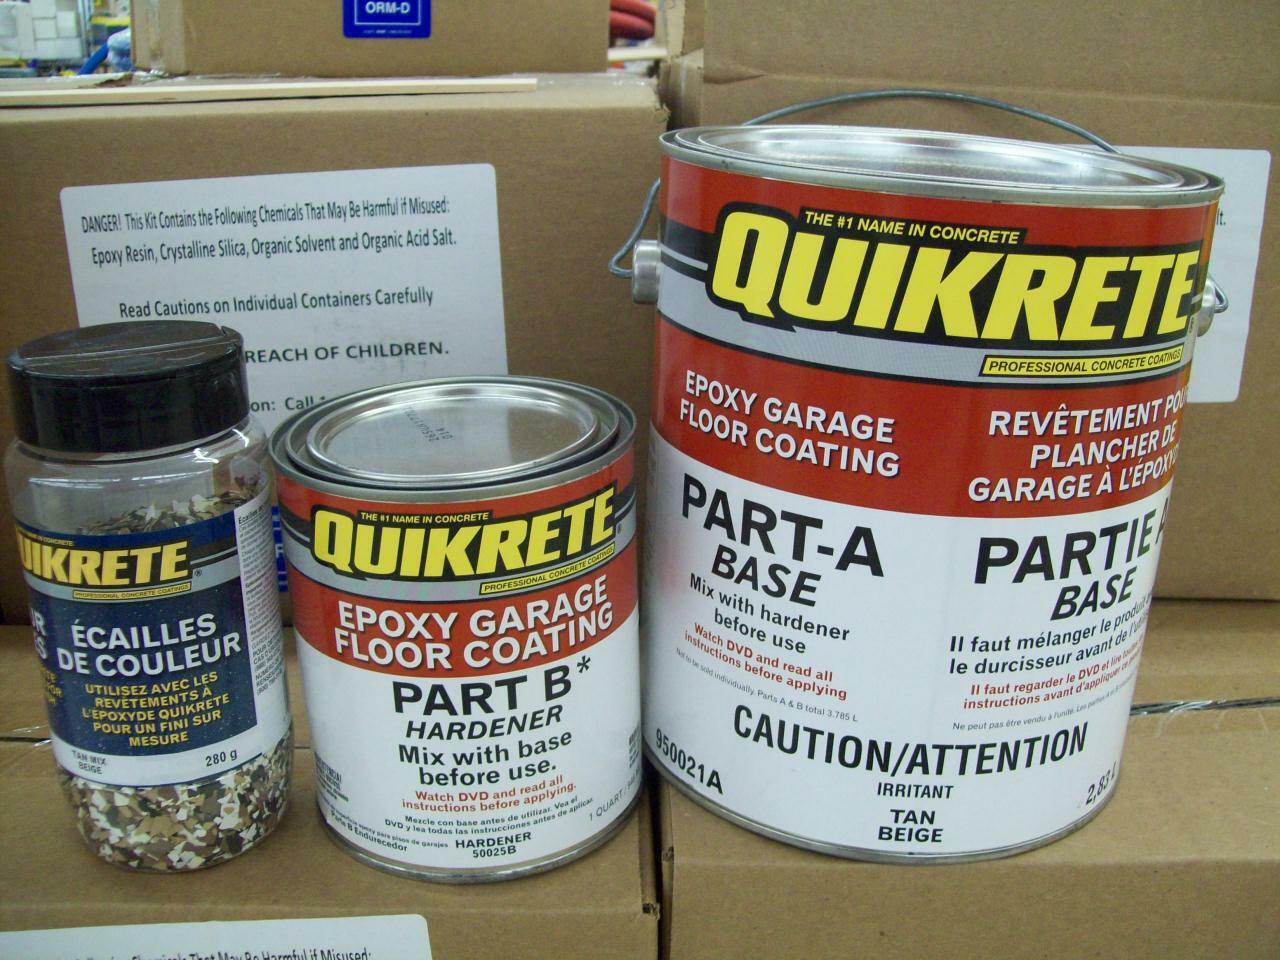 Quikrete Epoxy Garage Floor Coating Kit TAN  w TAN Quikrete color Flakes